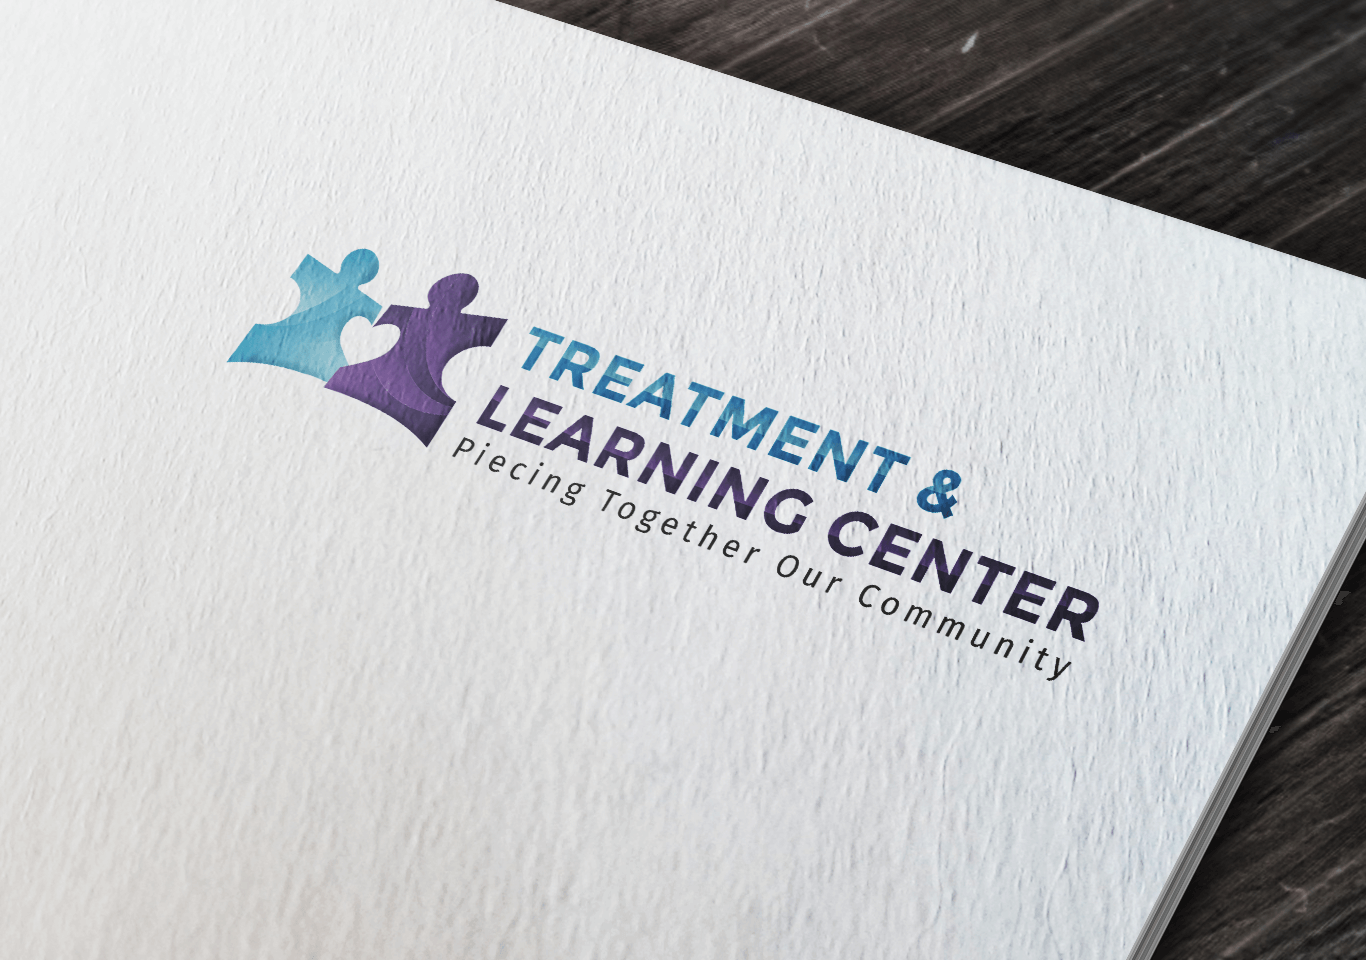 Treatment & Learning Center Branding